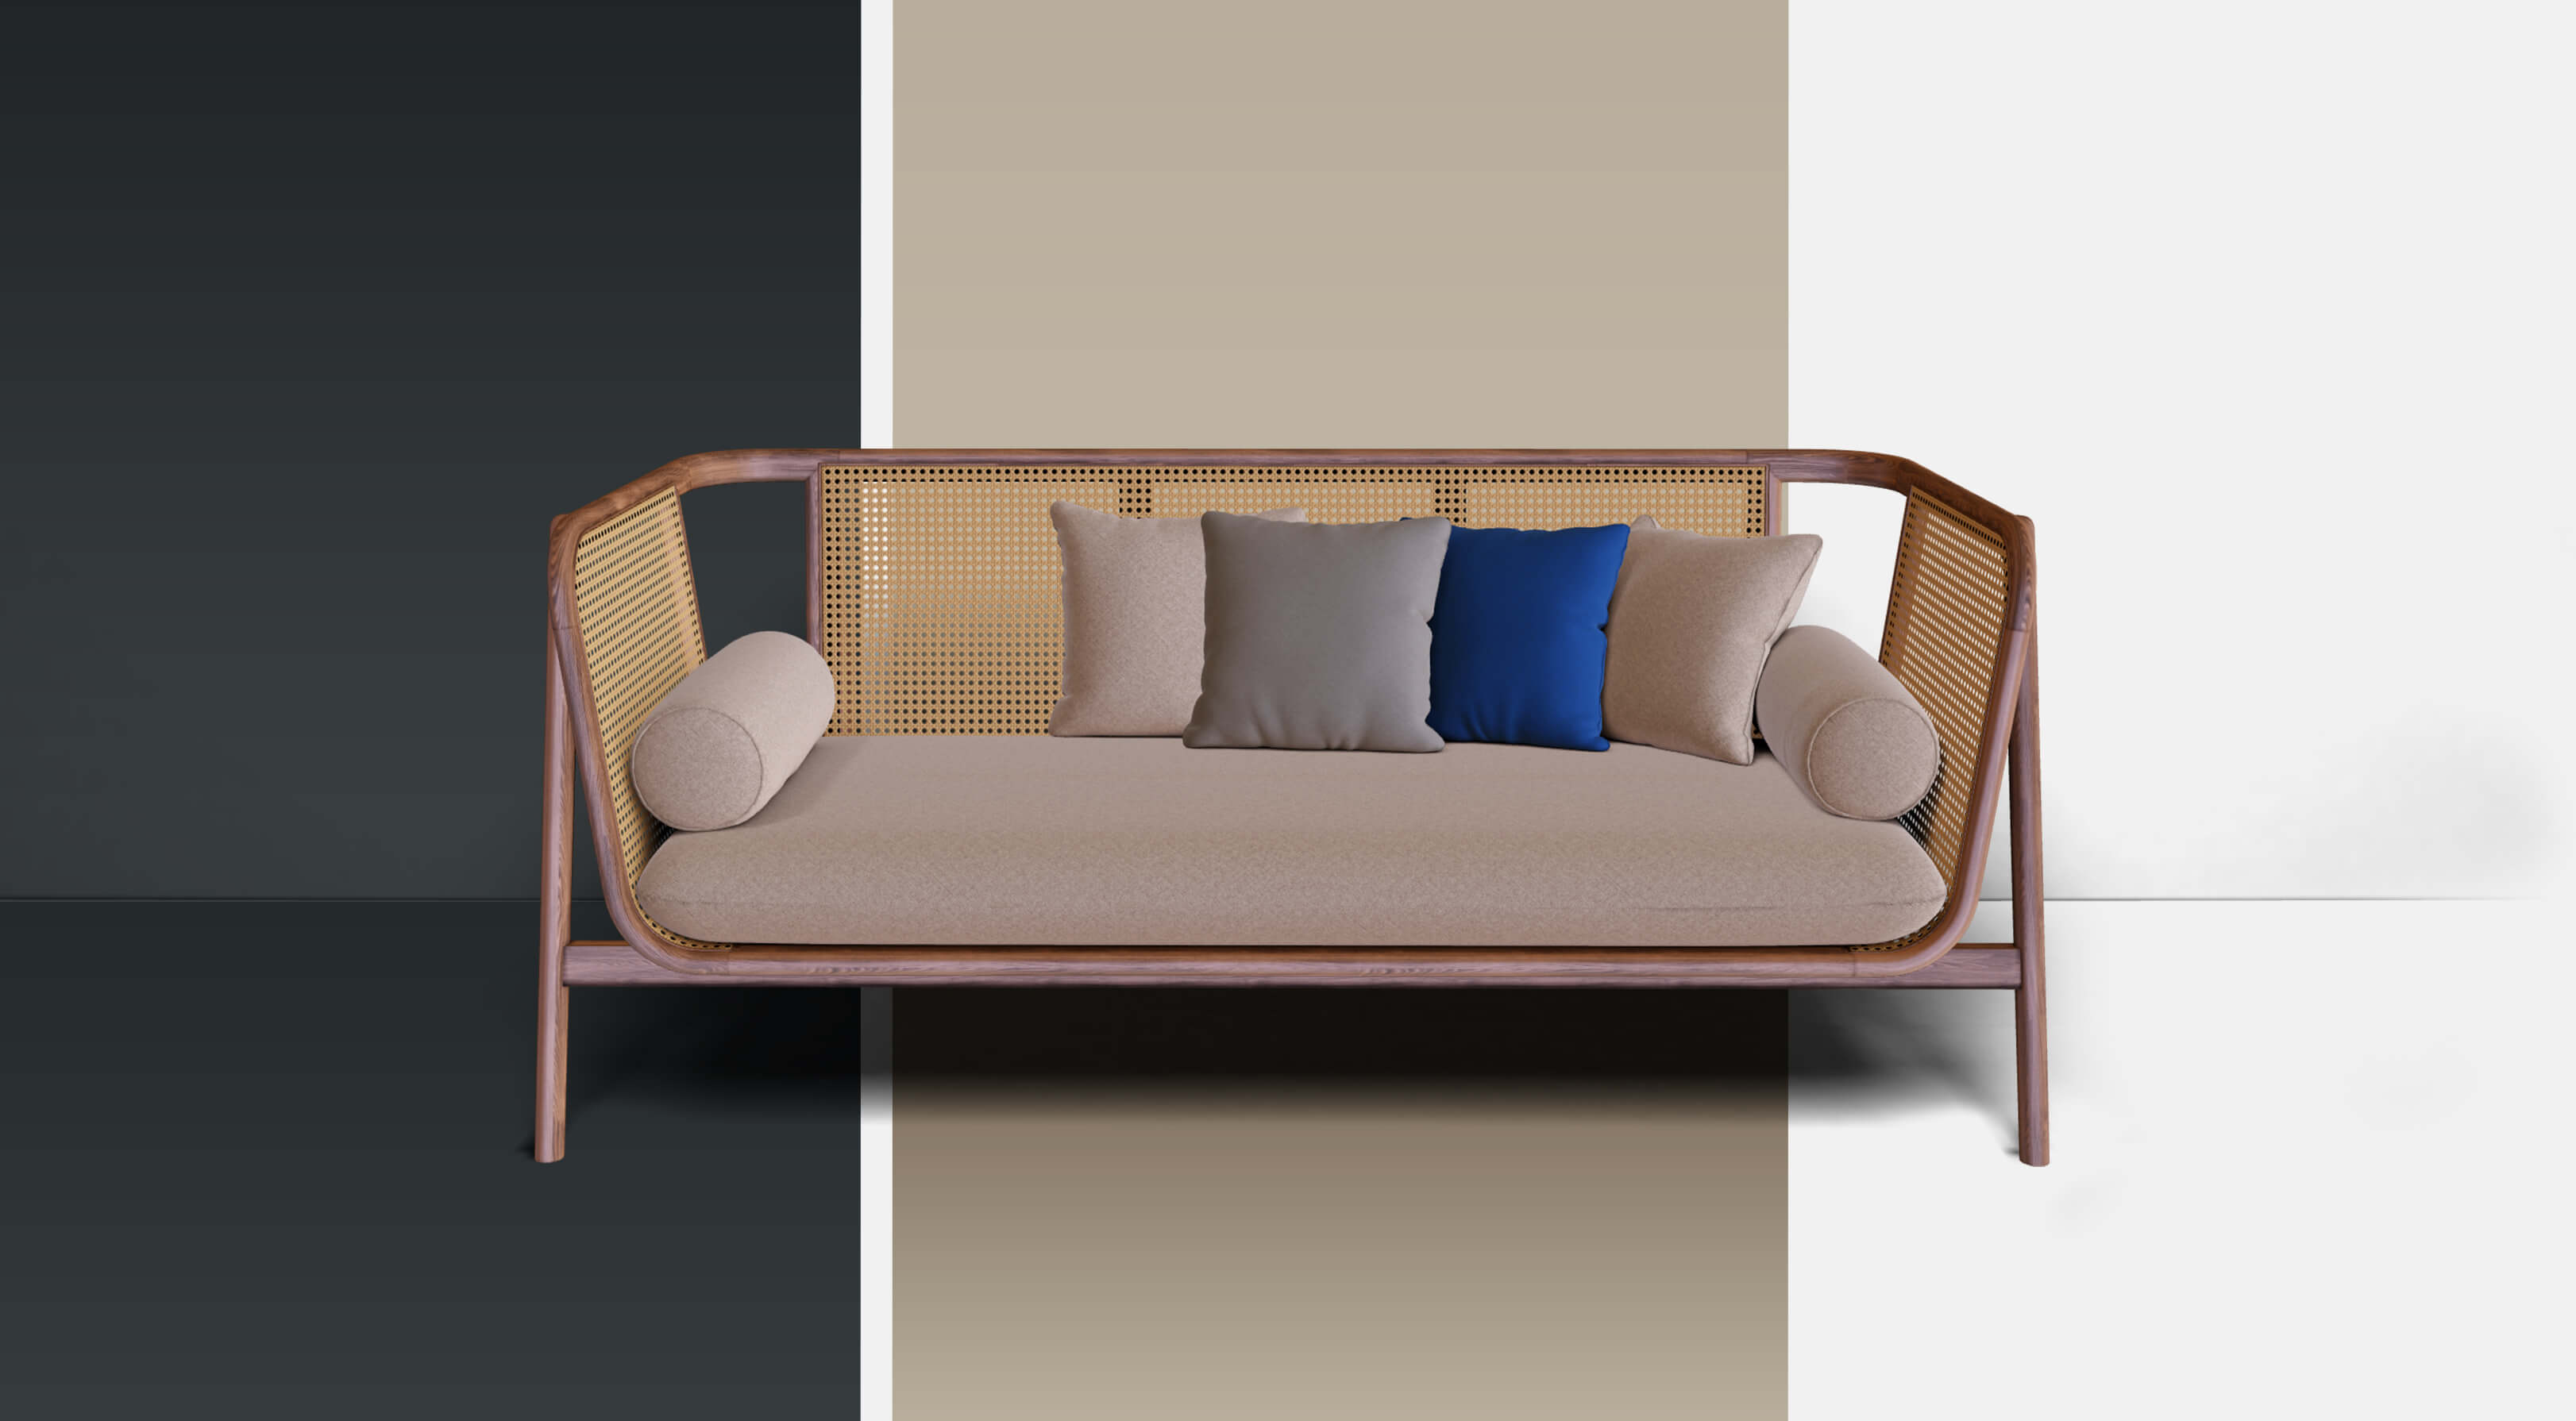 3D visualized product (couch) in front of different backgrounds, to show scene manipulation